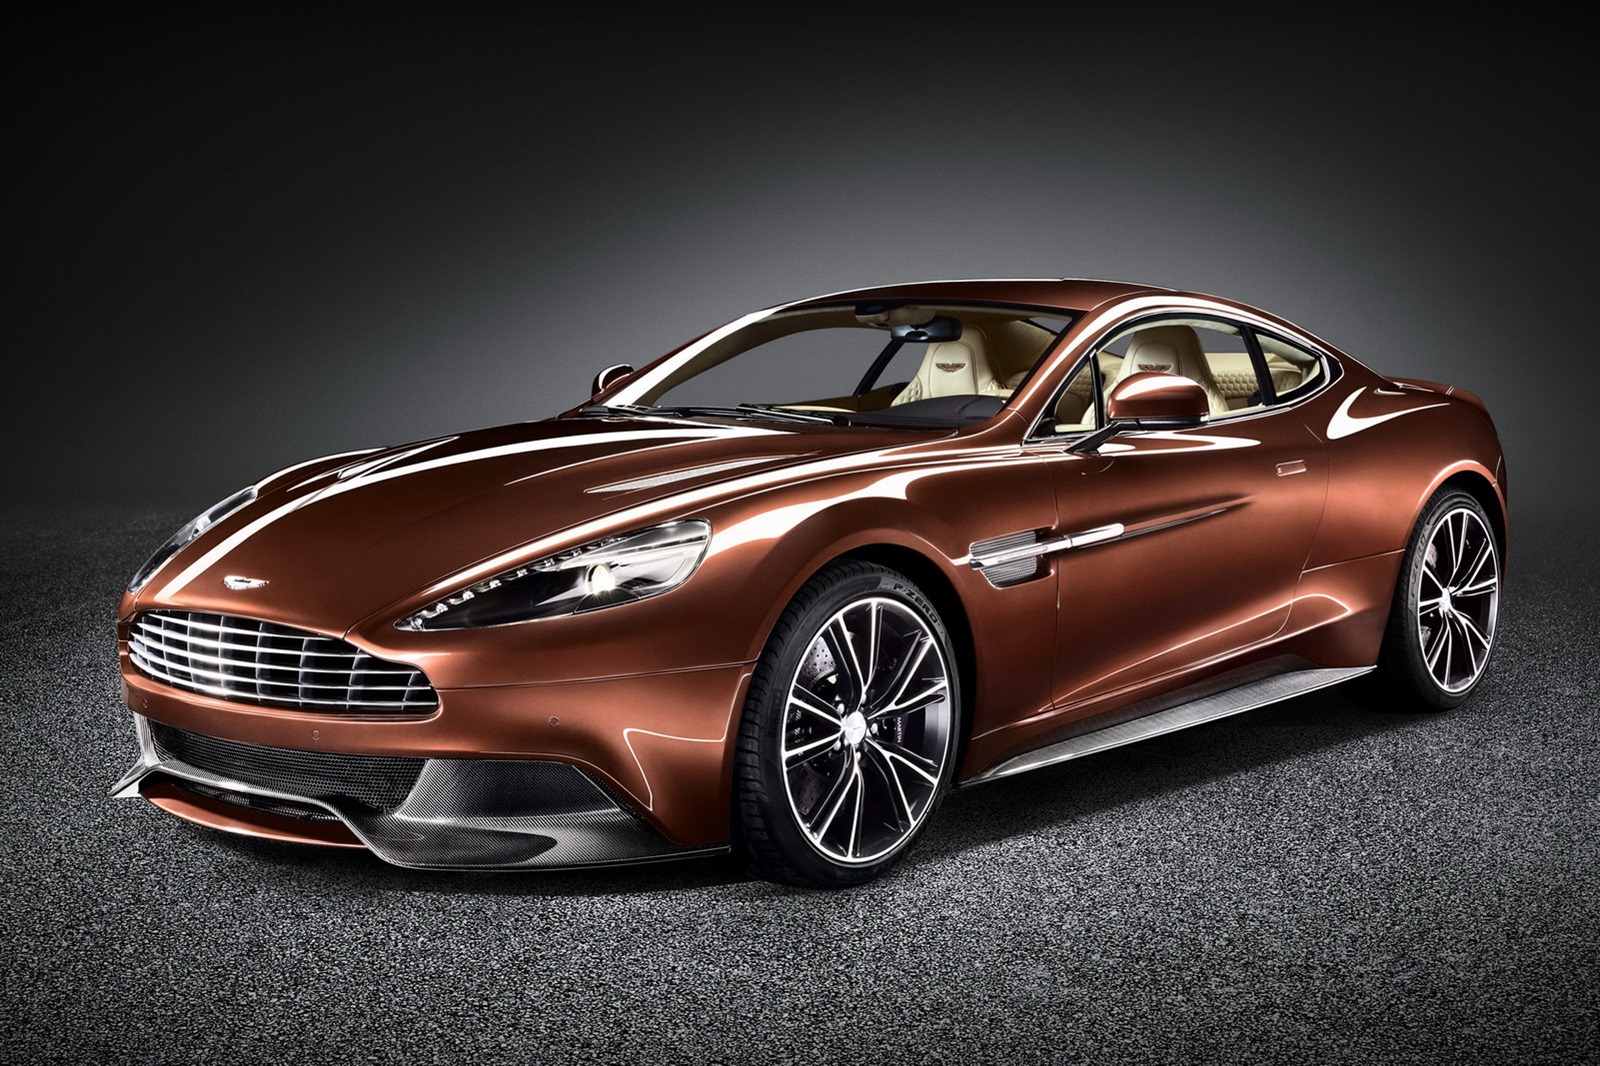 aston martin vanquish 2012 2013 2014 2015 2016 autoevolution. Black Bedroom Furniture Sets. Home Design Ideas